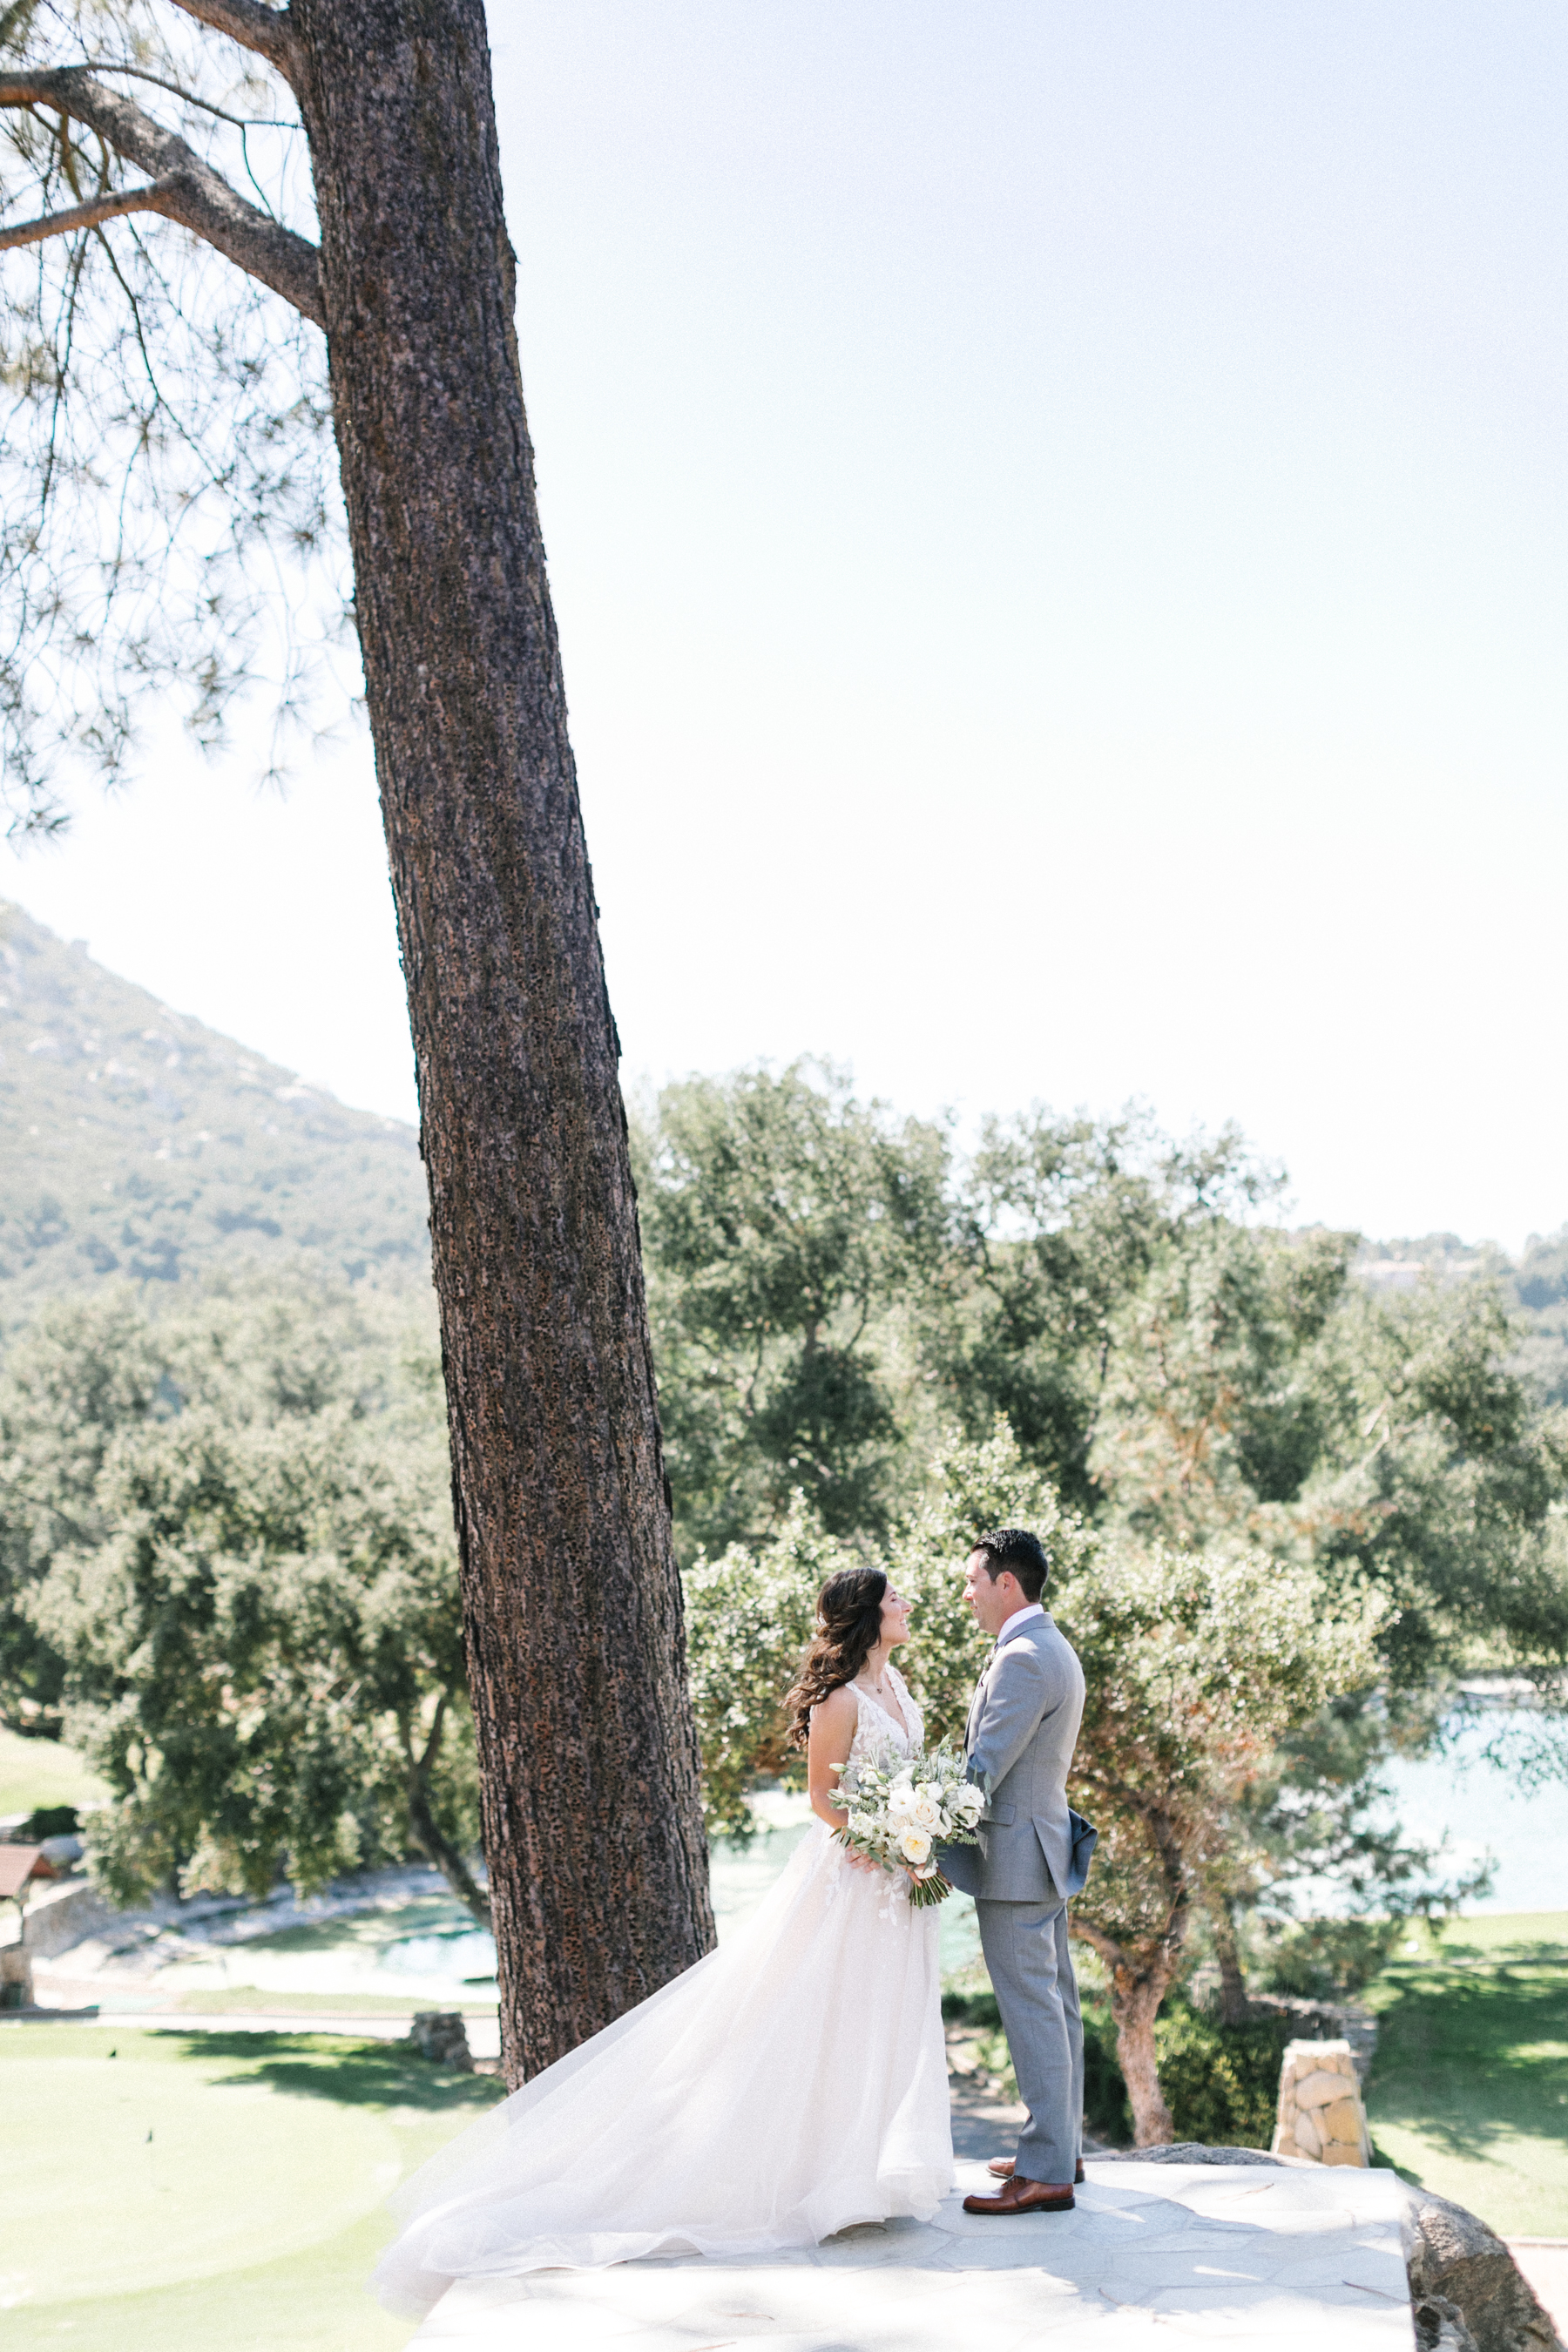 Jordan and Alex's Mt. Woodson Ramona Wedding Great Woodland Photography 8-31-19-8.jpg